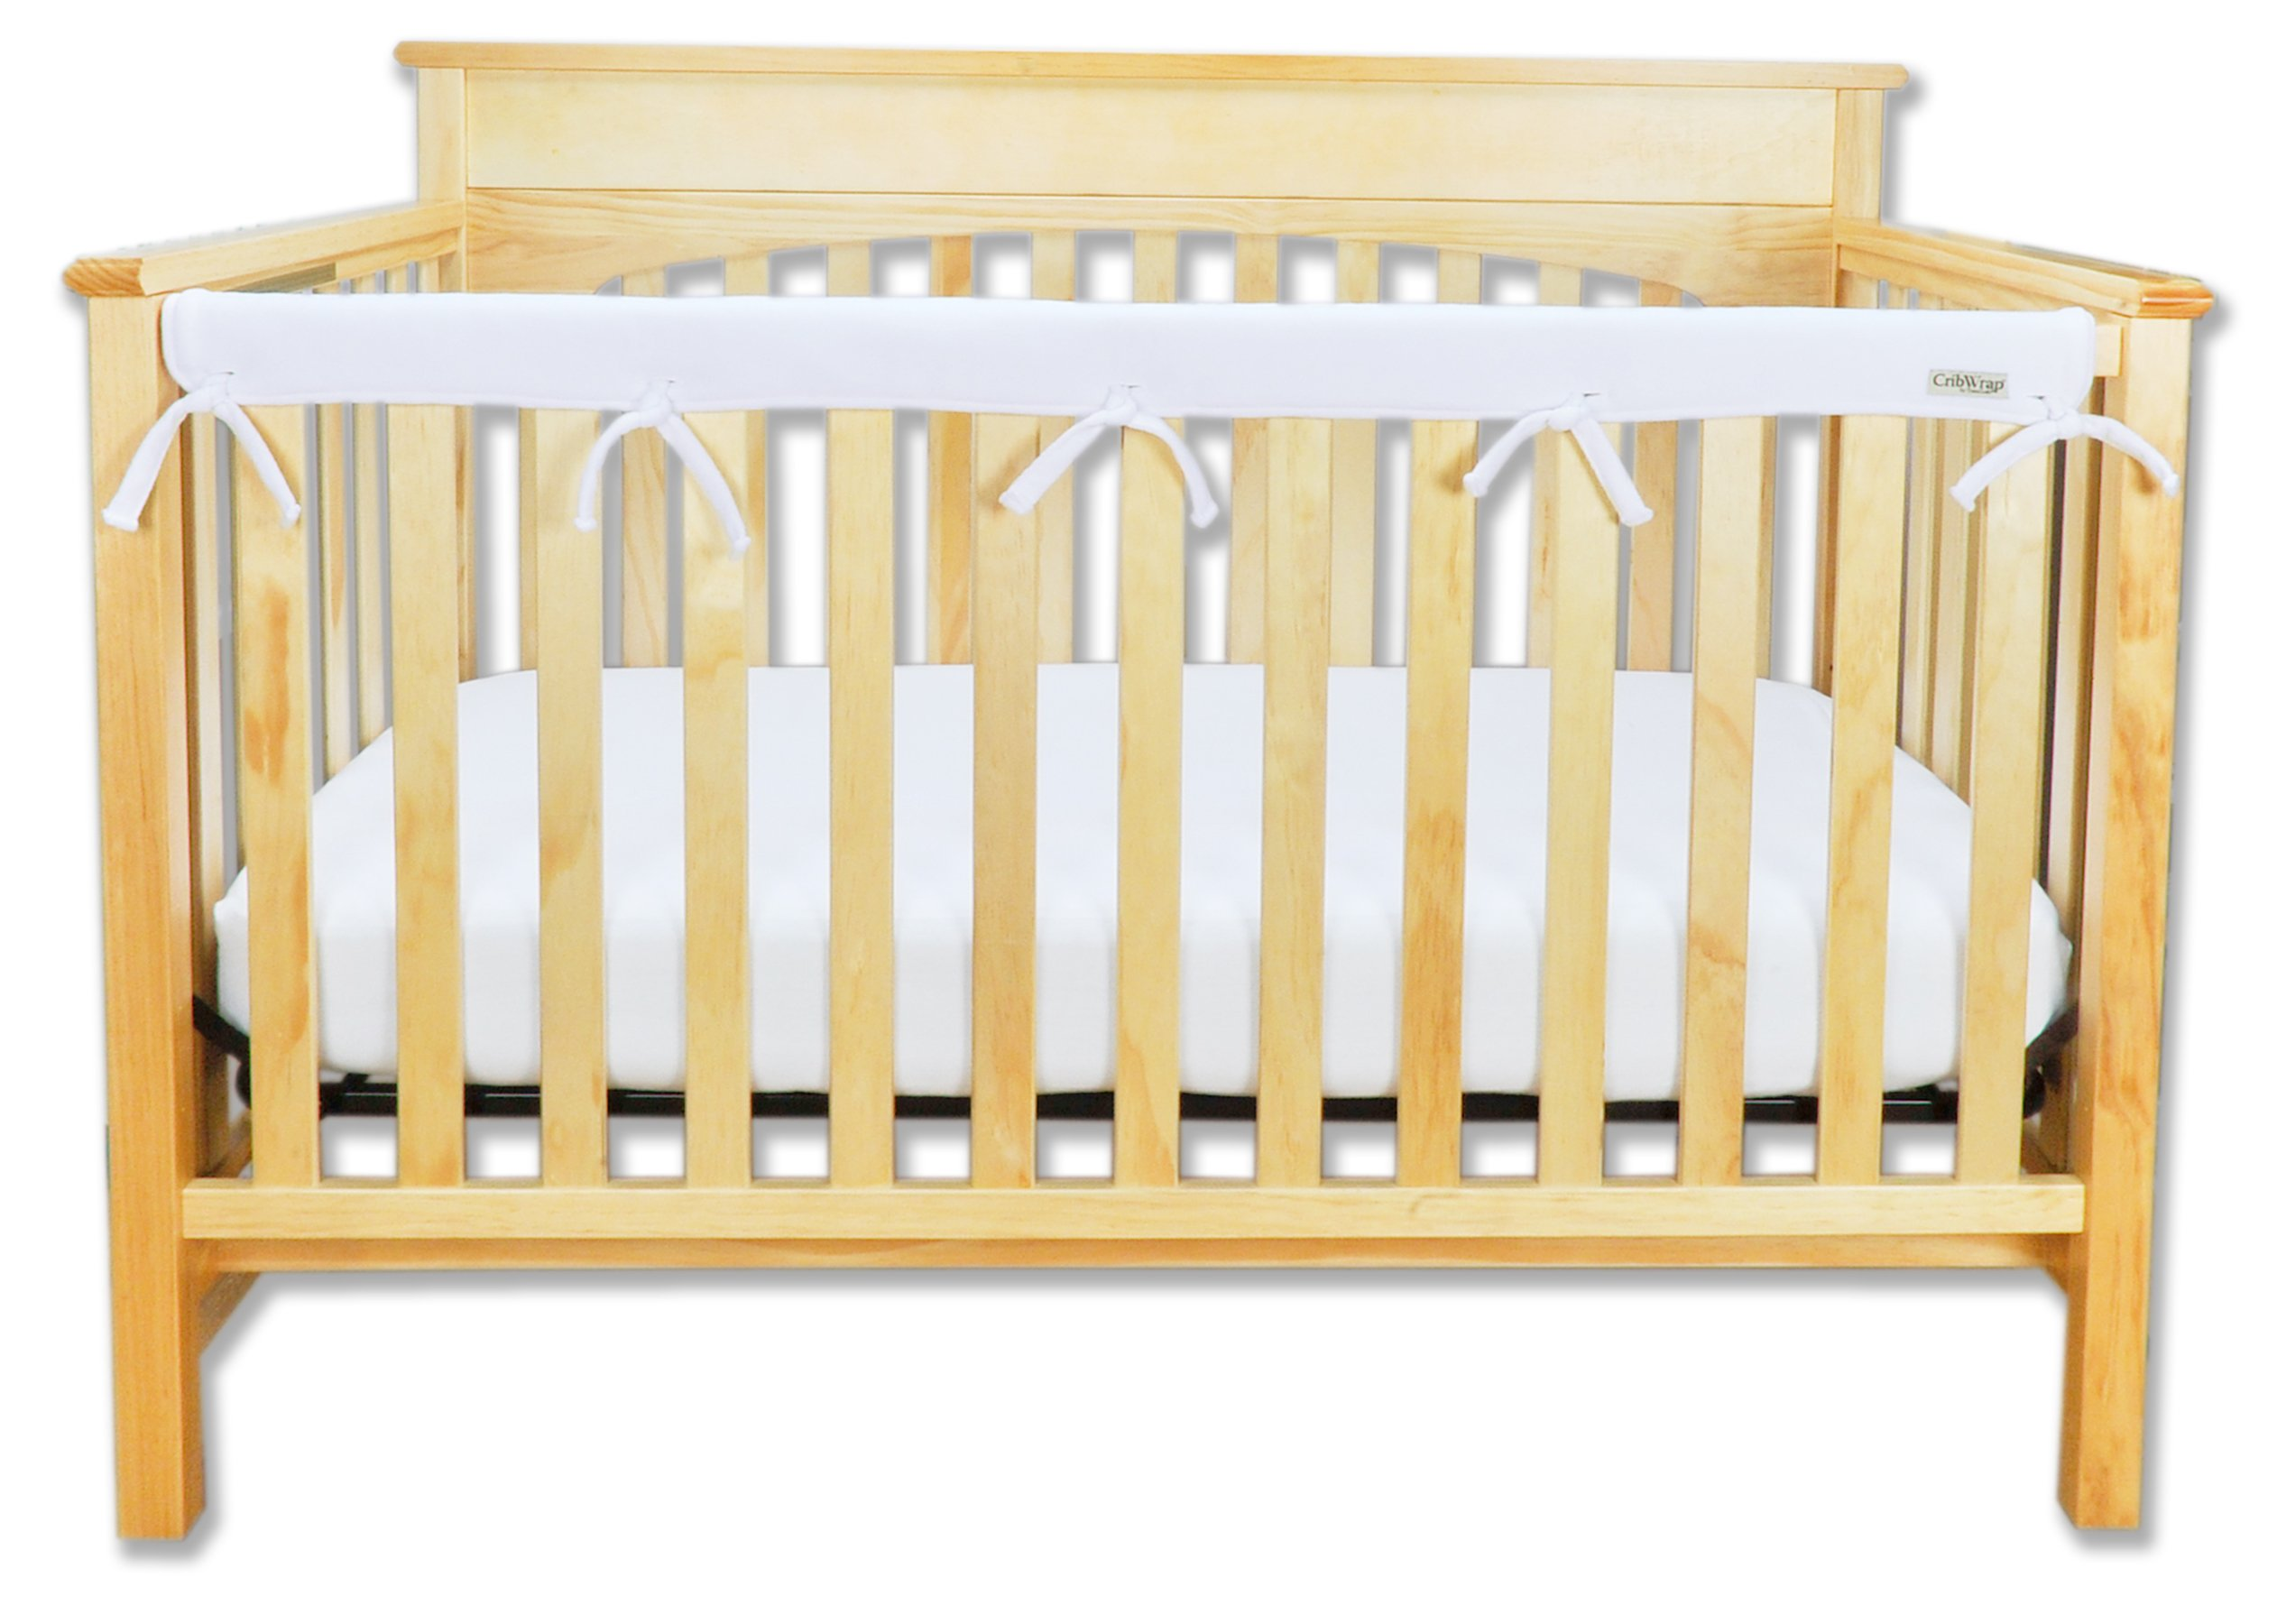 Trend Lab Waterproof CribWrap Rail Cover - For Narrow Long Crib Rails Made to Fit Rails up to 8'' Around